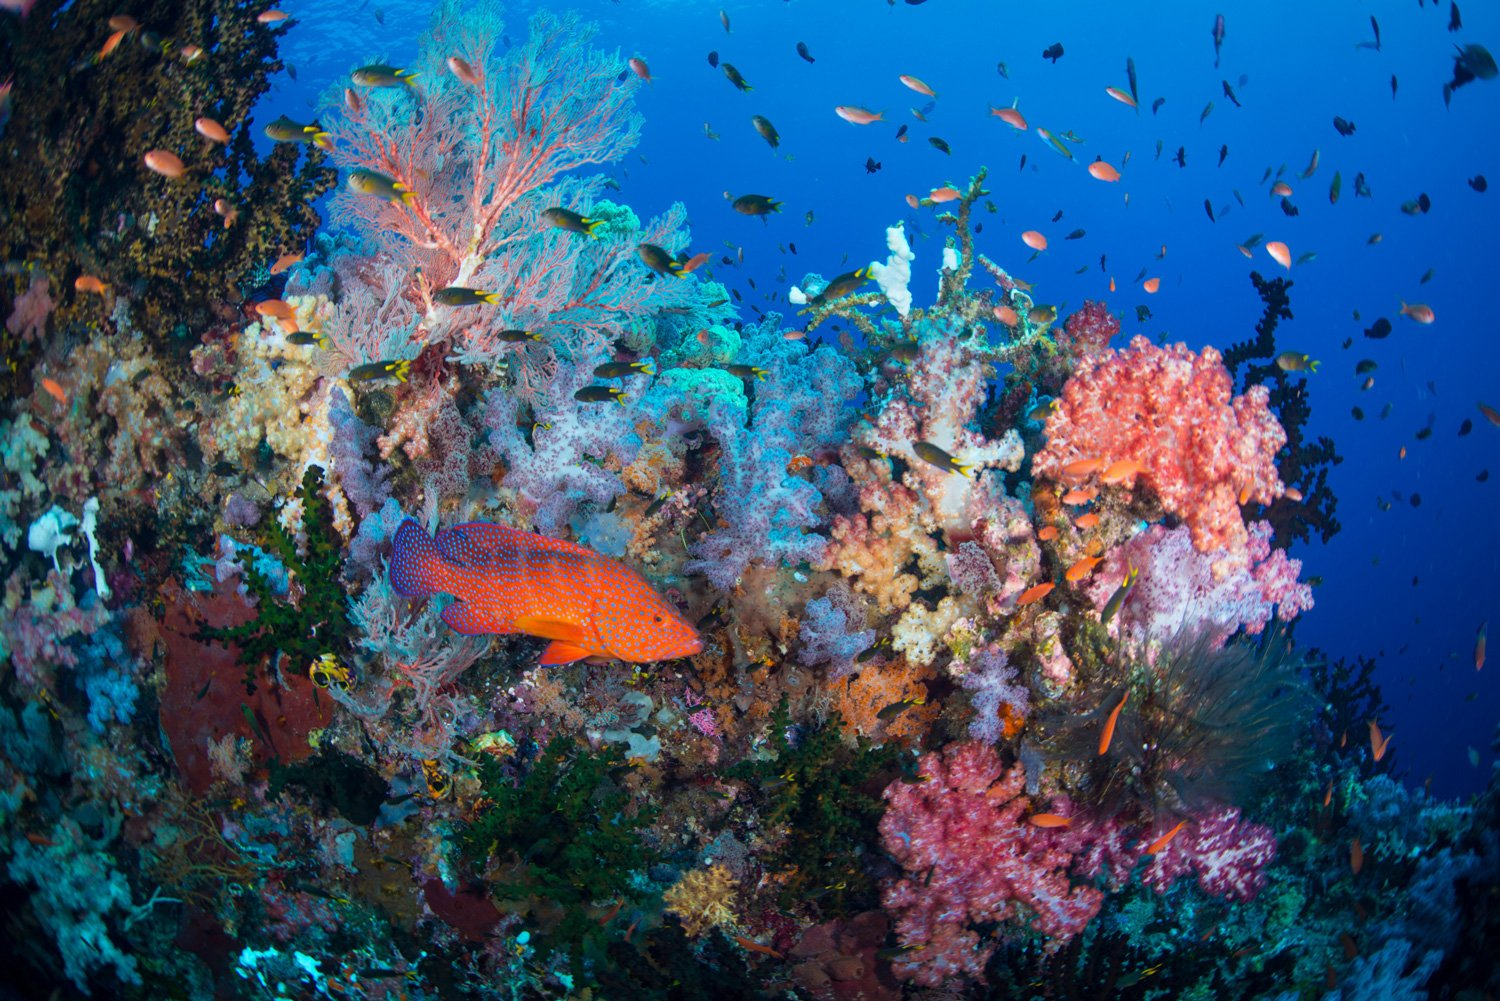 Enjoy the vivid colours of the coral and wildlife on the reefs